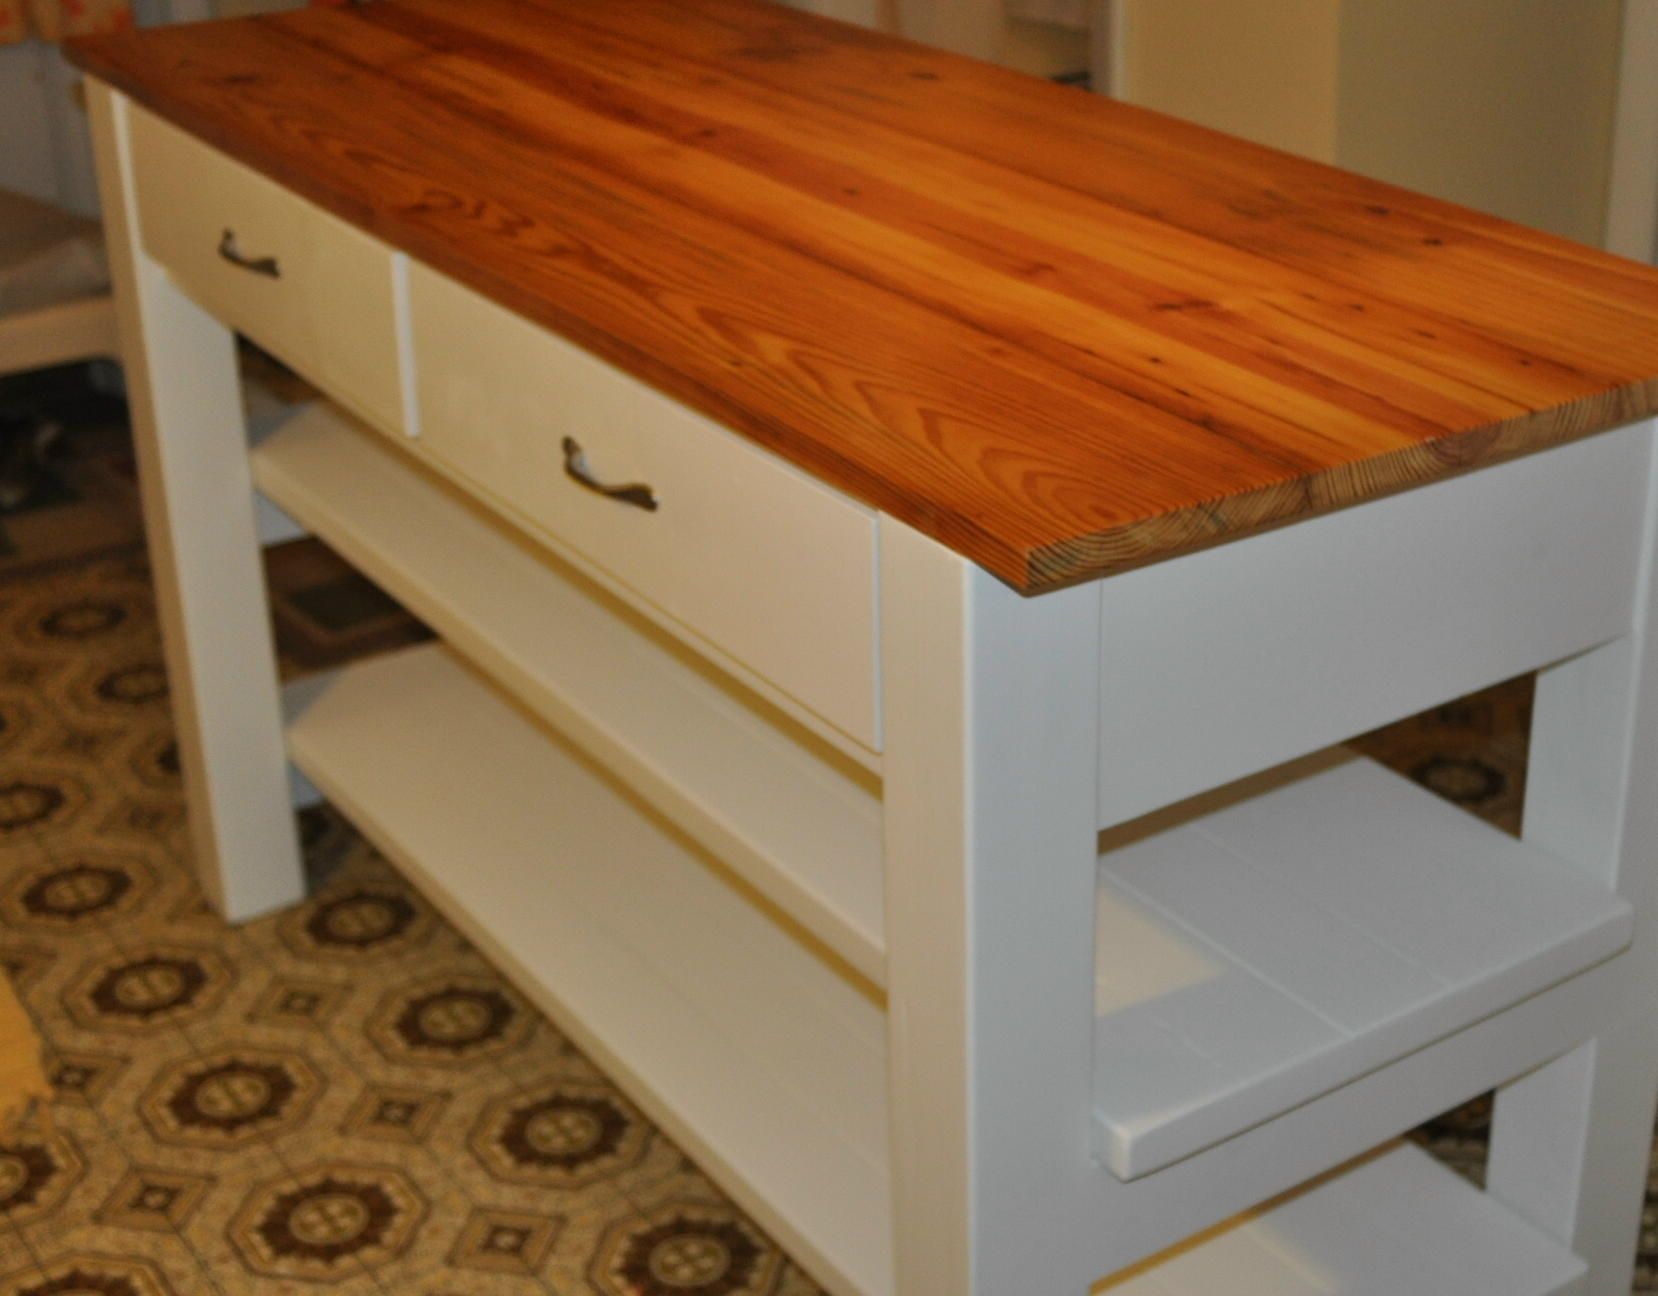 Ana White Modified Michaela S Kitchen Island Diy Projects